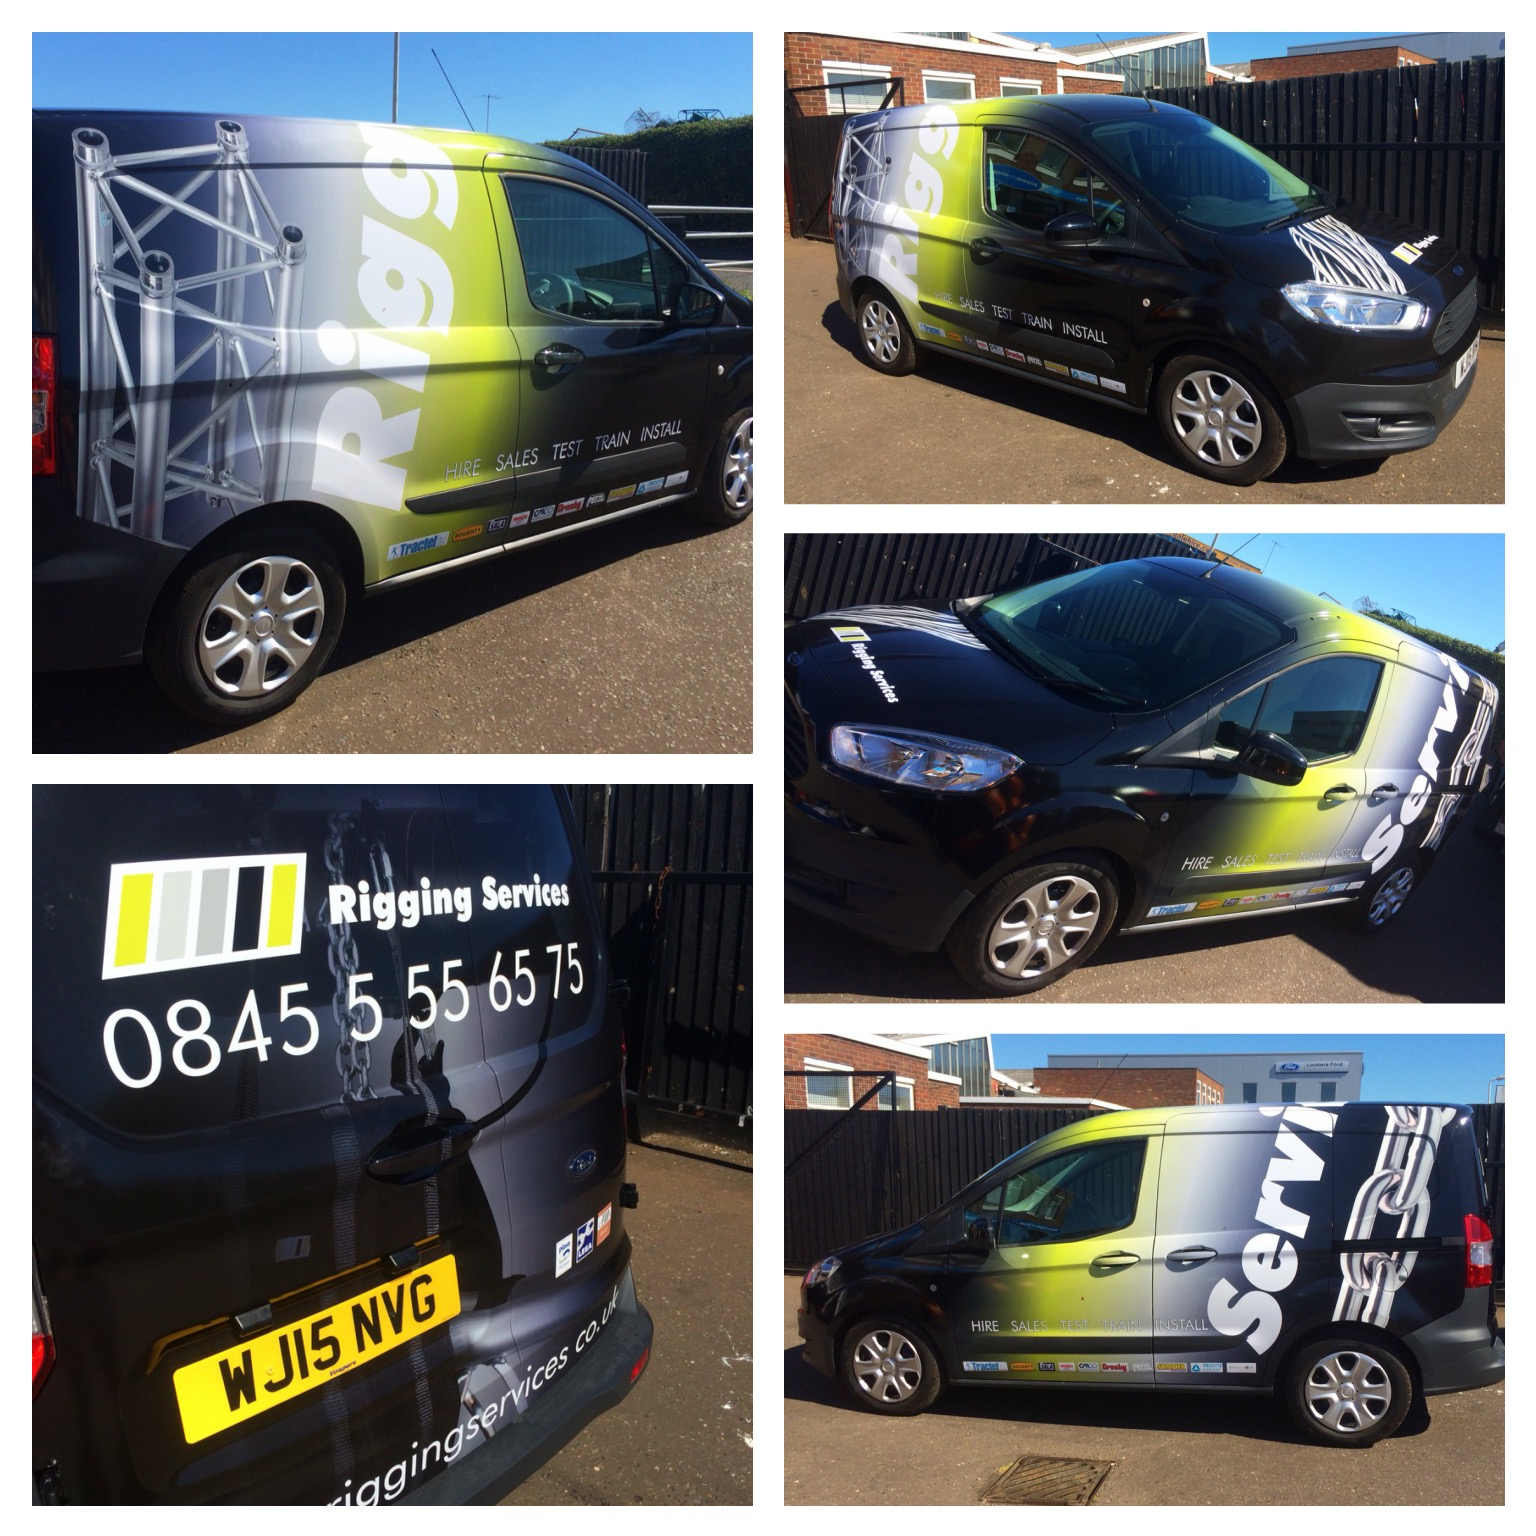 New Livery On Rigging Services Mobile Technician Vans